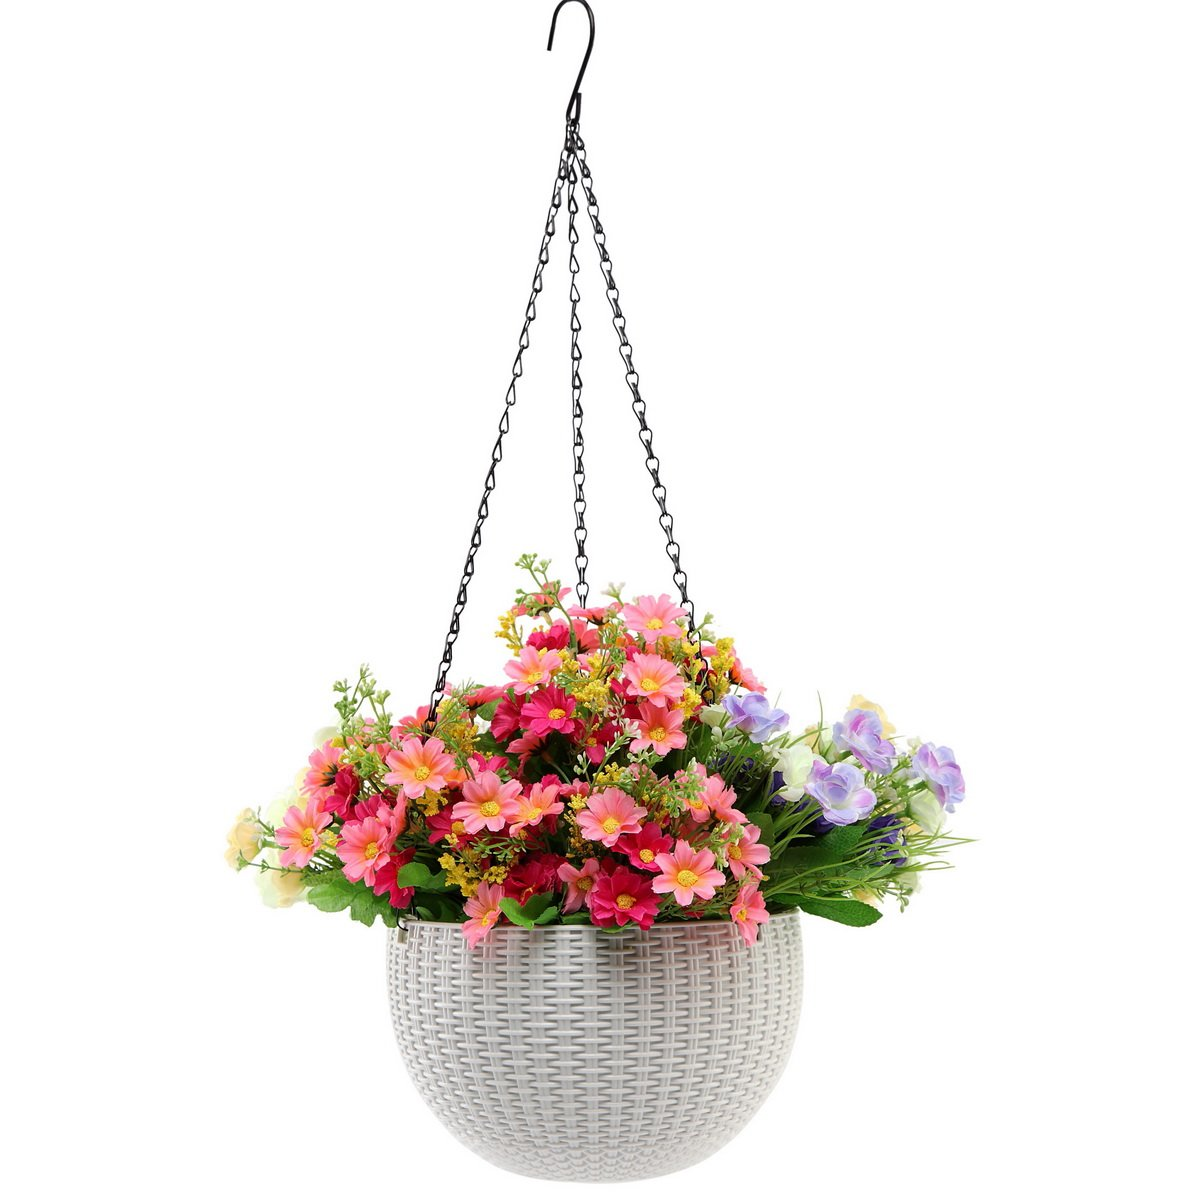 Hanging Planter -YIKUSH 8.66 In Round Decor Garden Rattan Plastic Flower Pot Basket for Plant,White